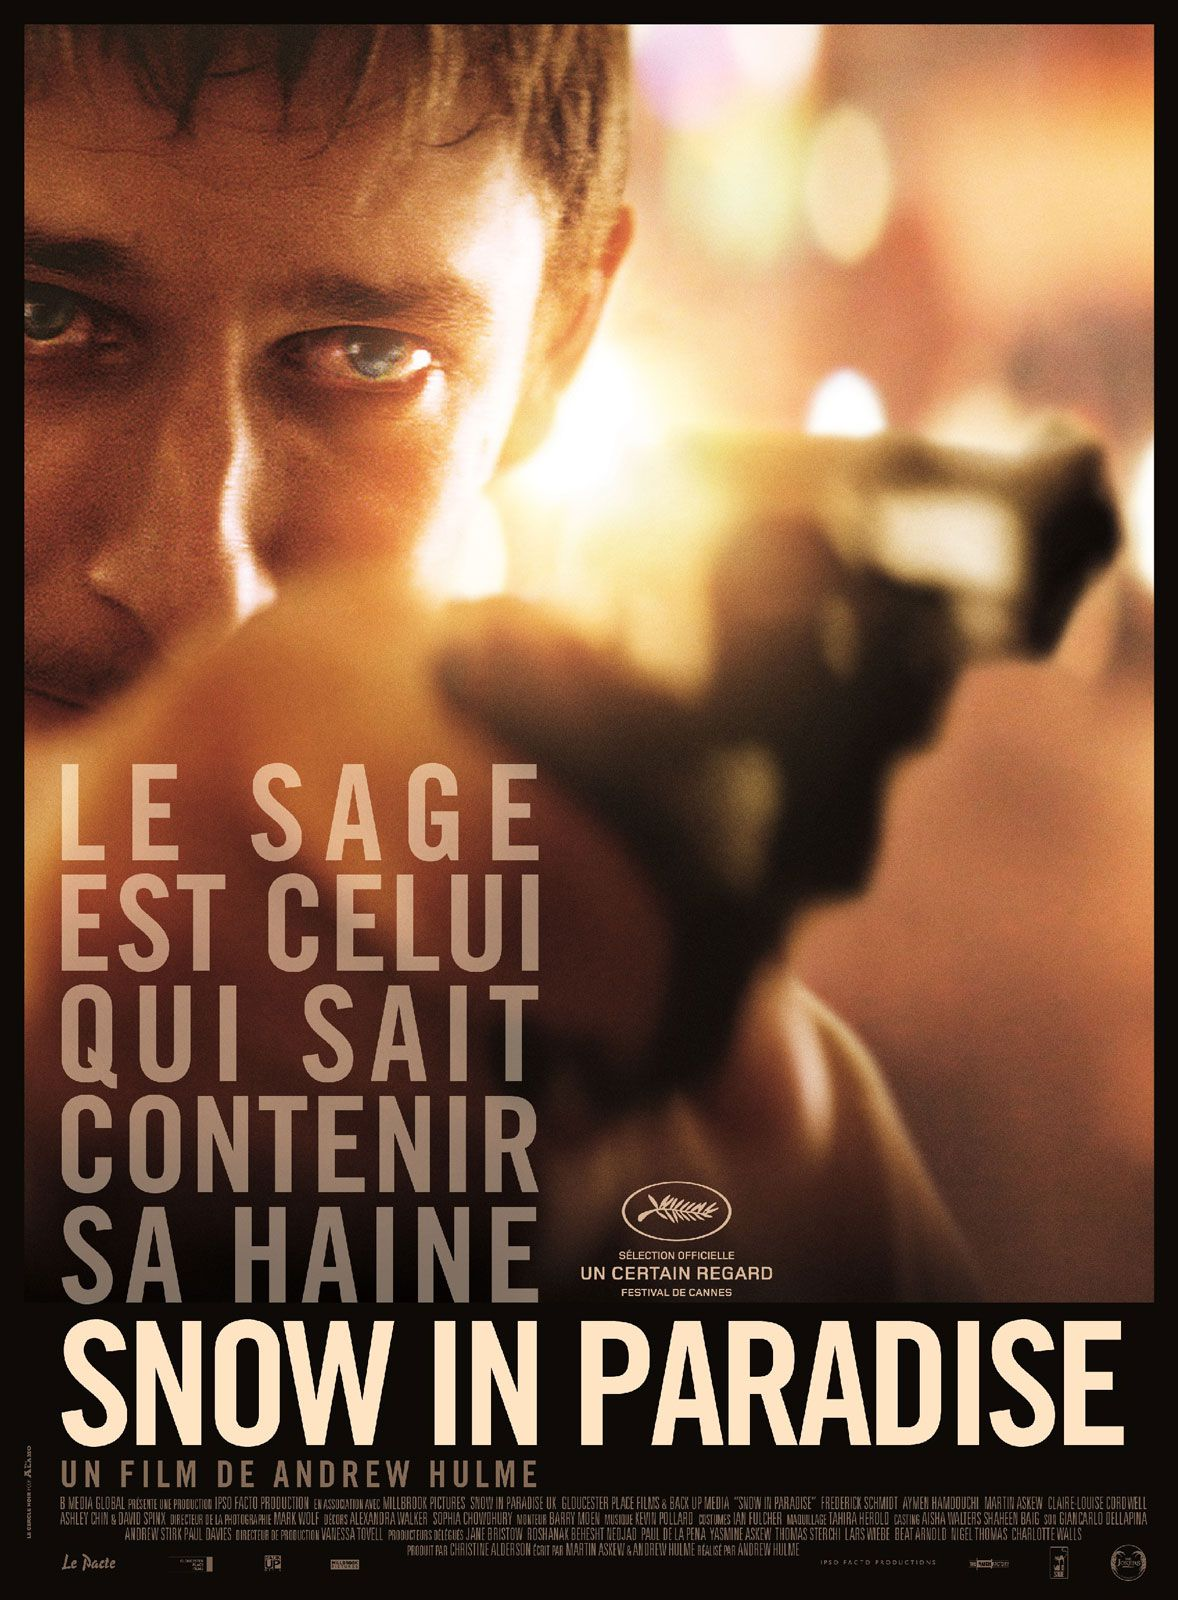 Snow in Paradise - Film (2015) streaming VF gratuit complet